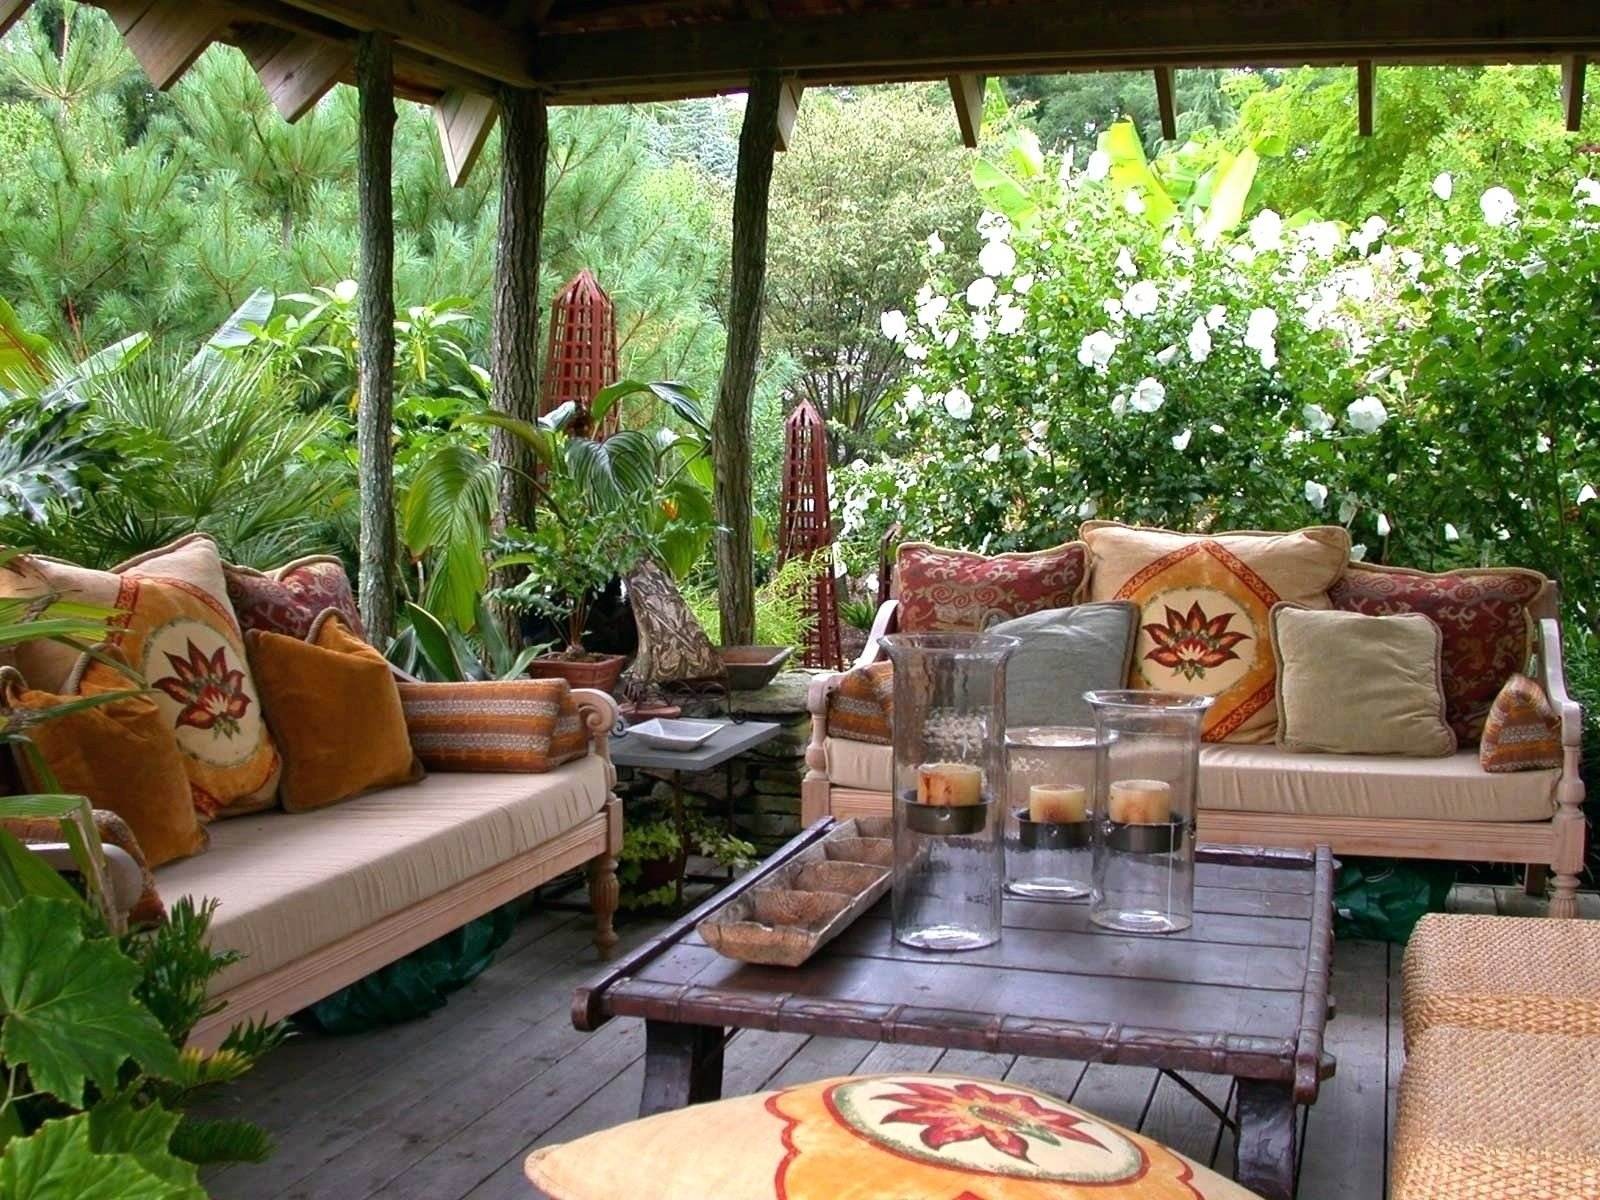 10 Perfect Outdoor Patio Ideas For Small Spaces small patio decorating ideas awesome beautiful small space patio 2020